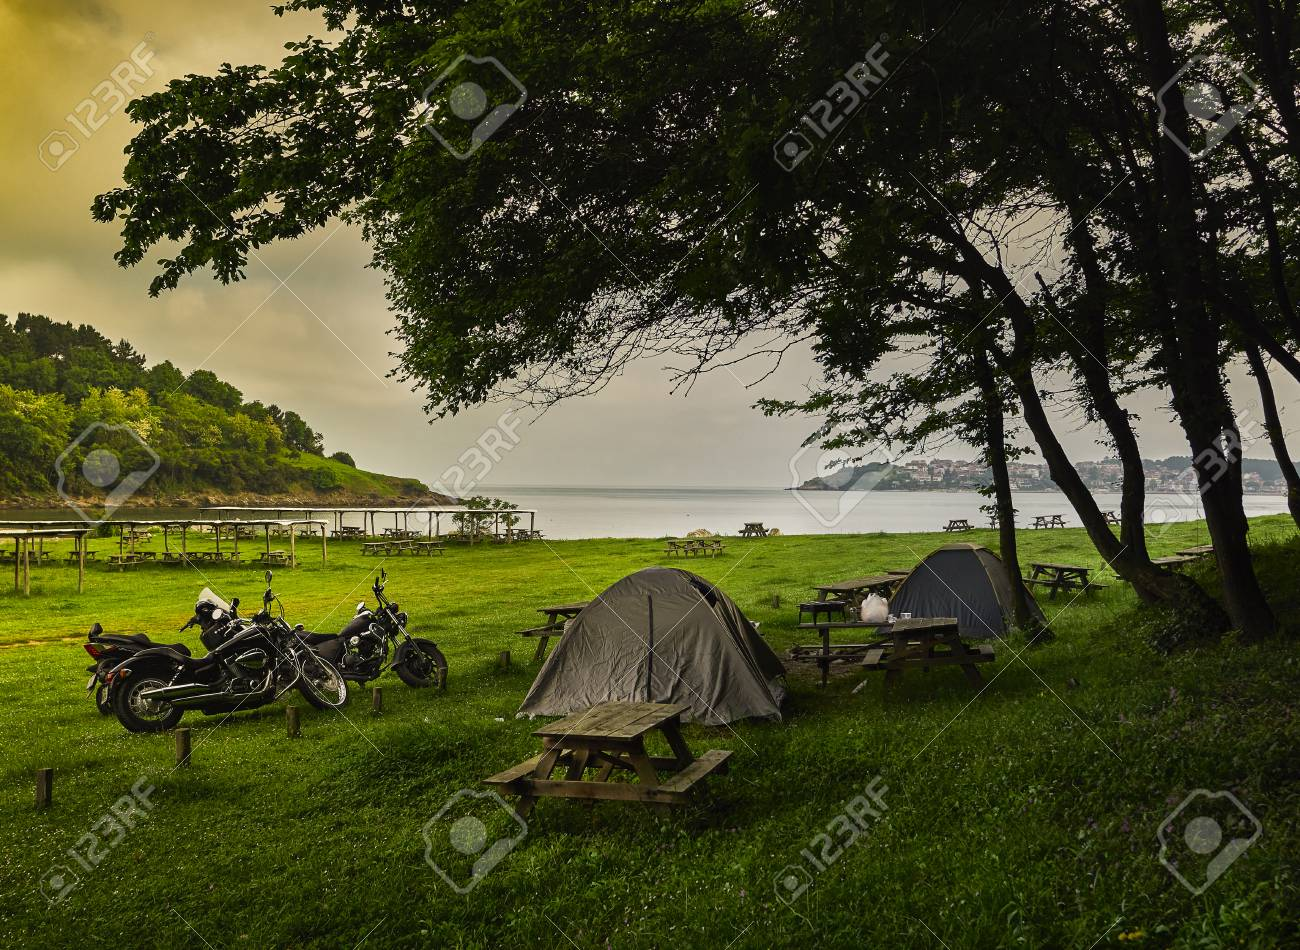 Motorcycle tent c& - Kerpe Kocaeli Turkey Stock Photo - 82116463 & Motorcycle Tent Camp - Kerpe Kocaeli Turkey Stock Photo Picture ...